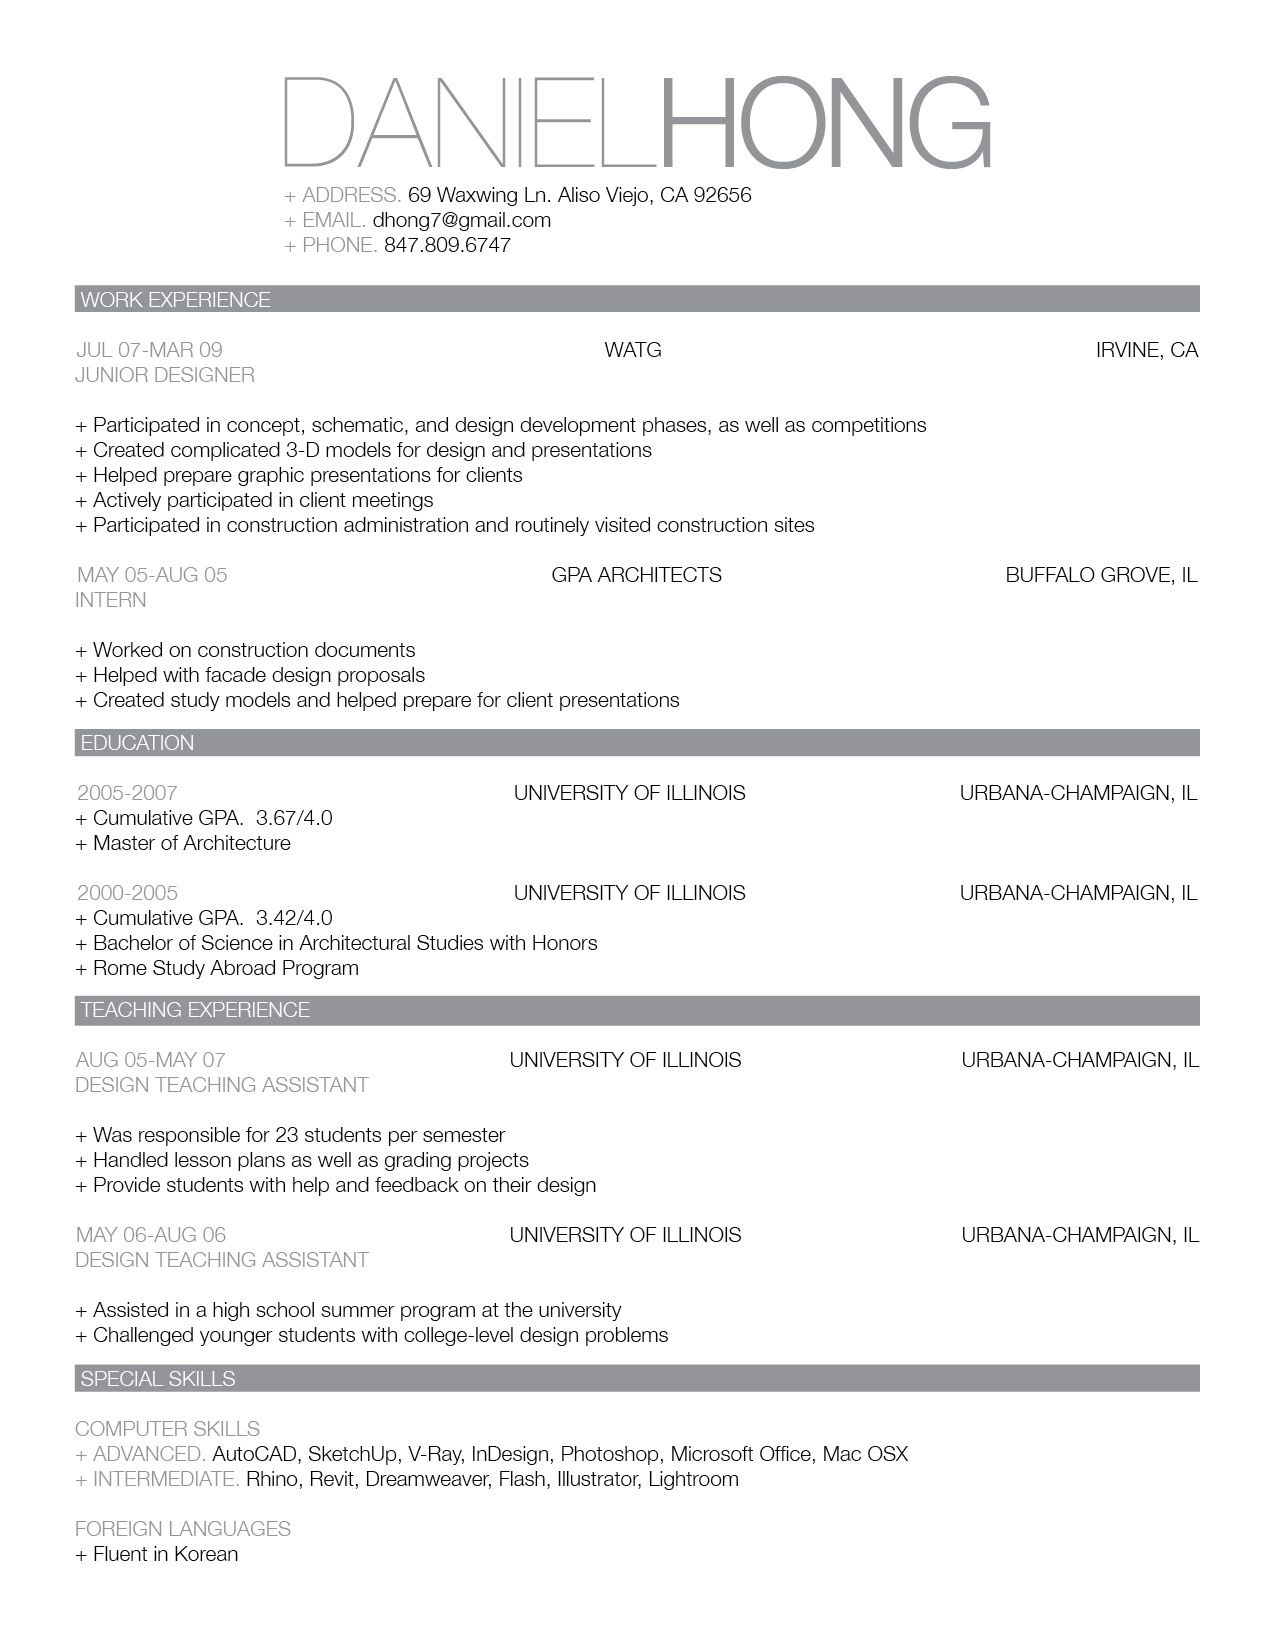 updated cv and work sample - Updated Resume Templates